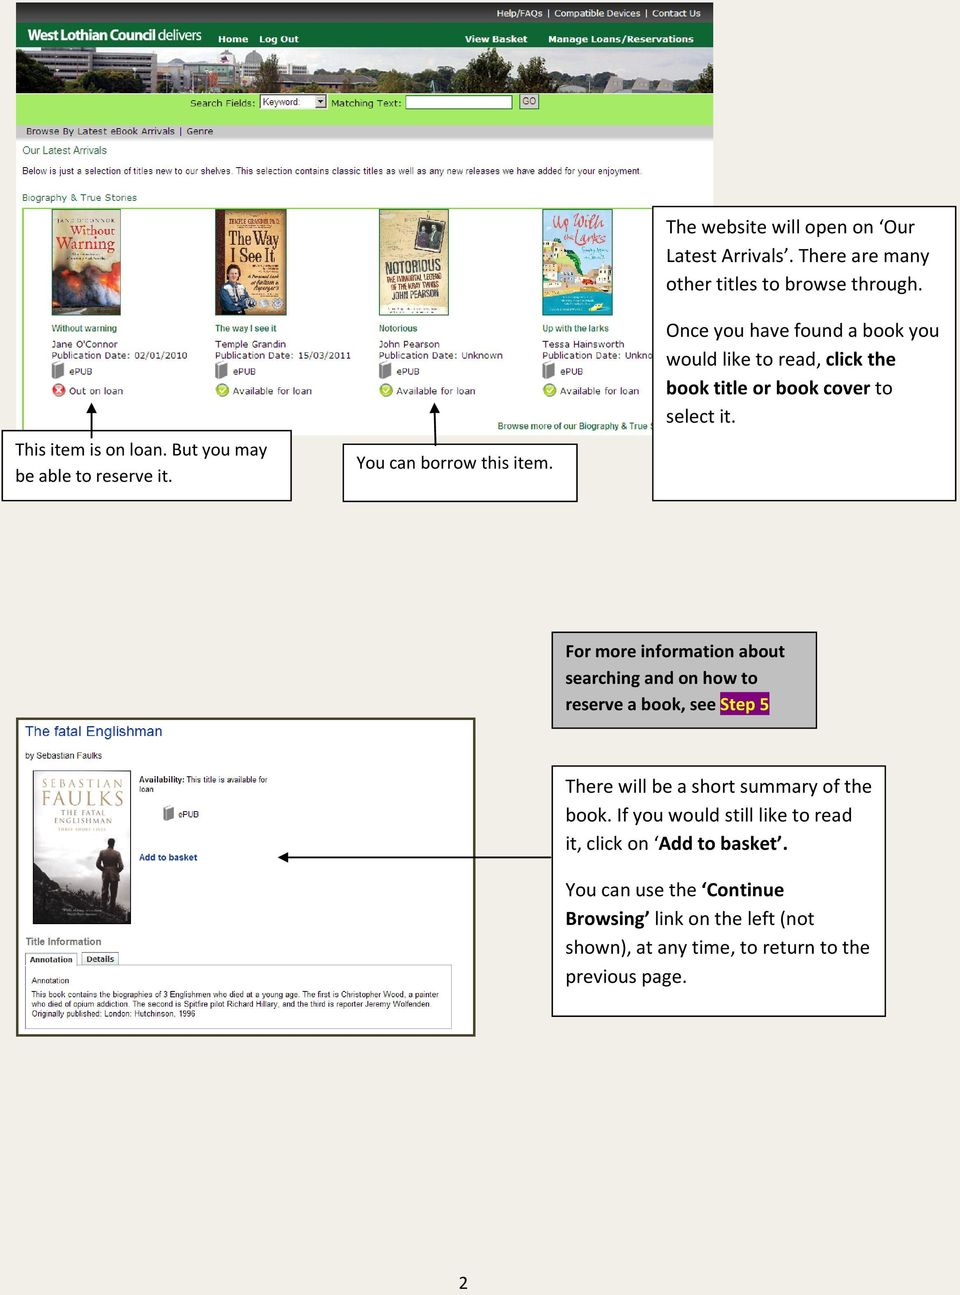 Once you have found a book you would like to read, click the book title or book cover to select it.